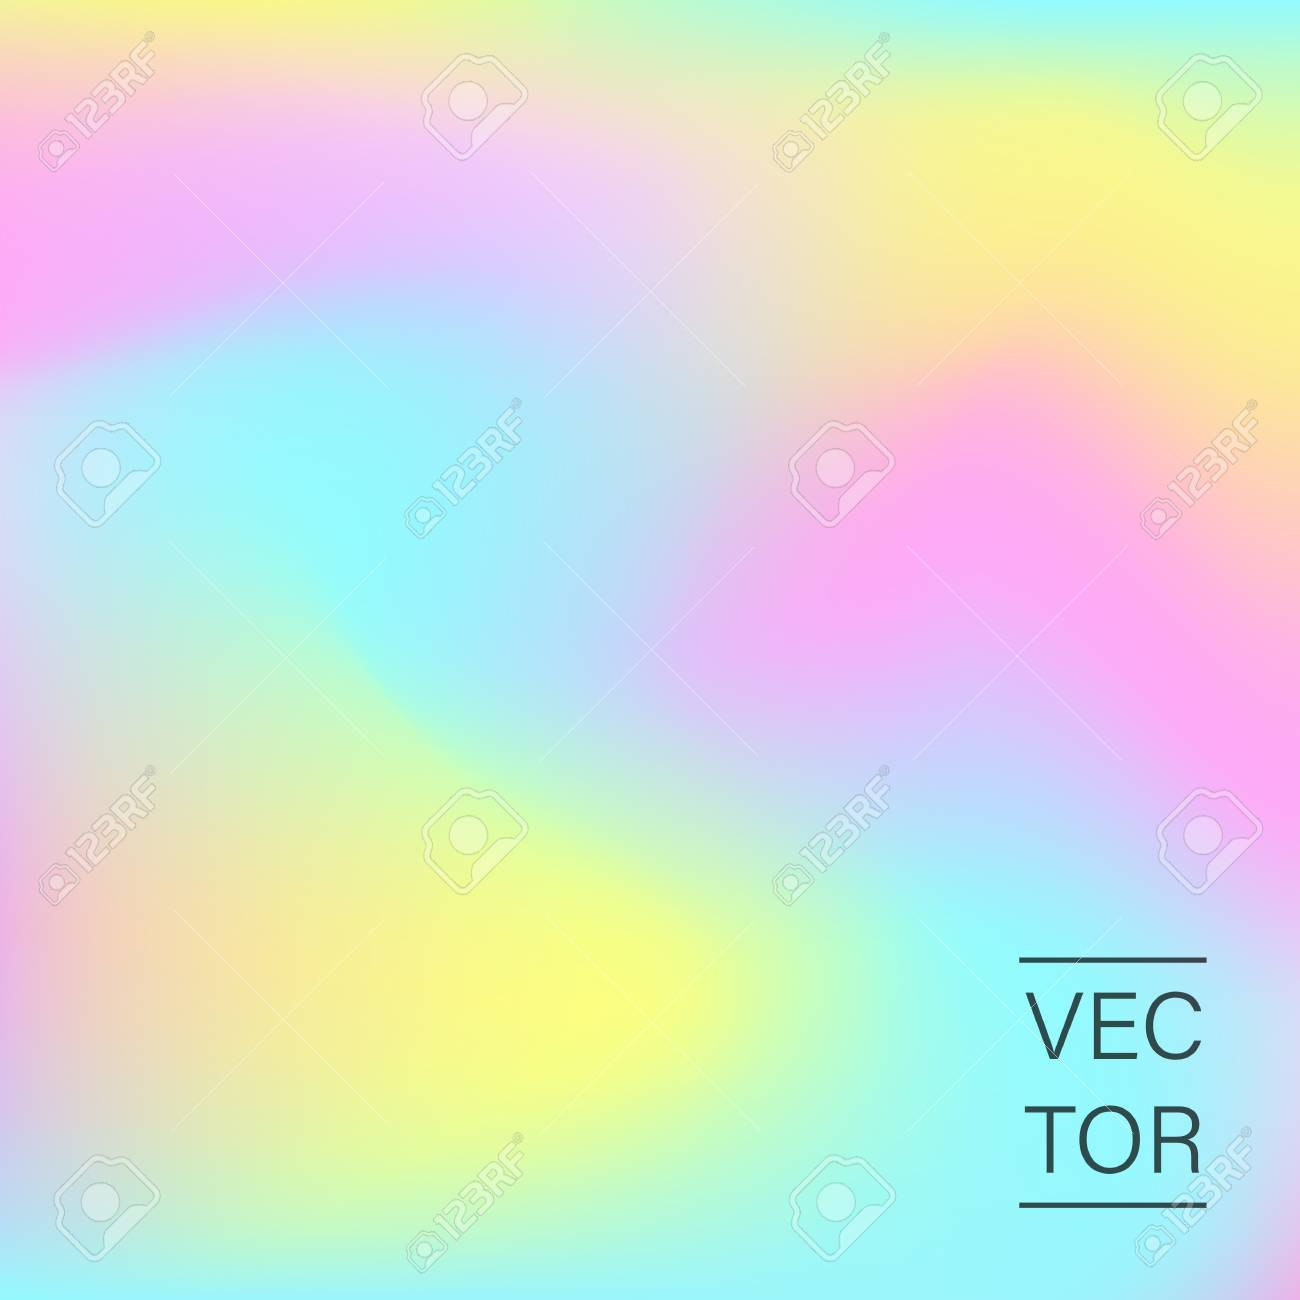 Holographic fashion pastel abstract background - 98070534